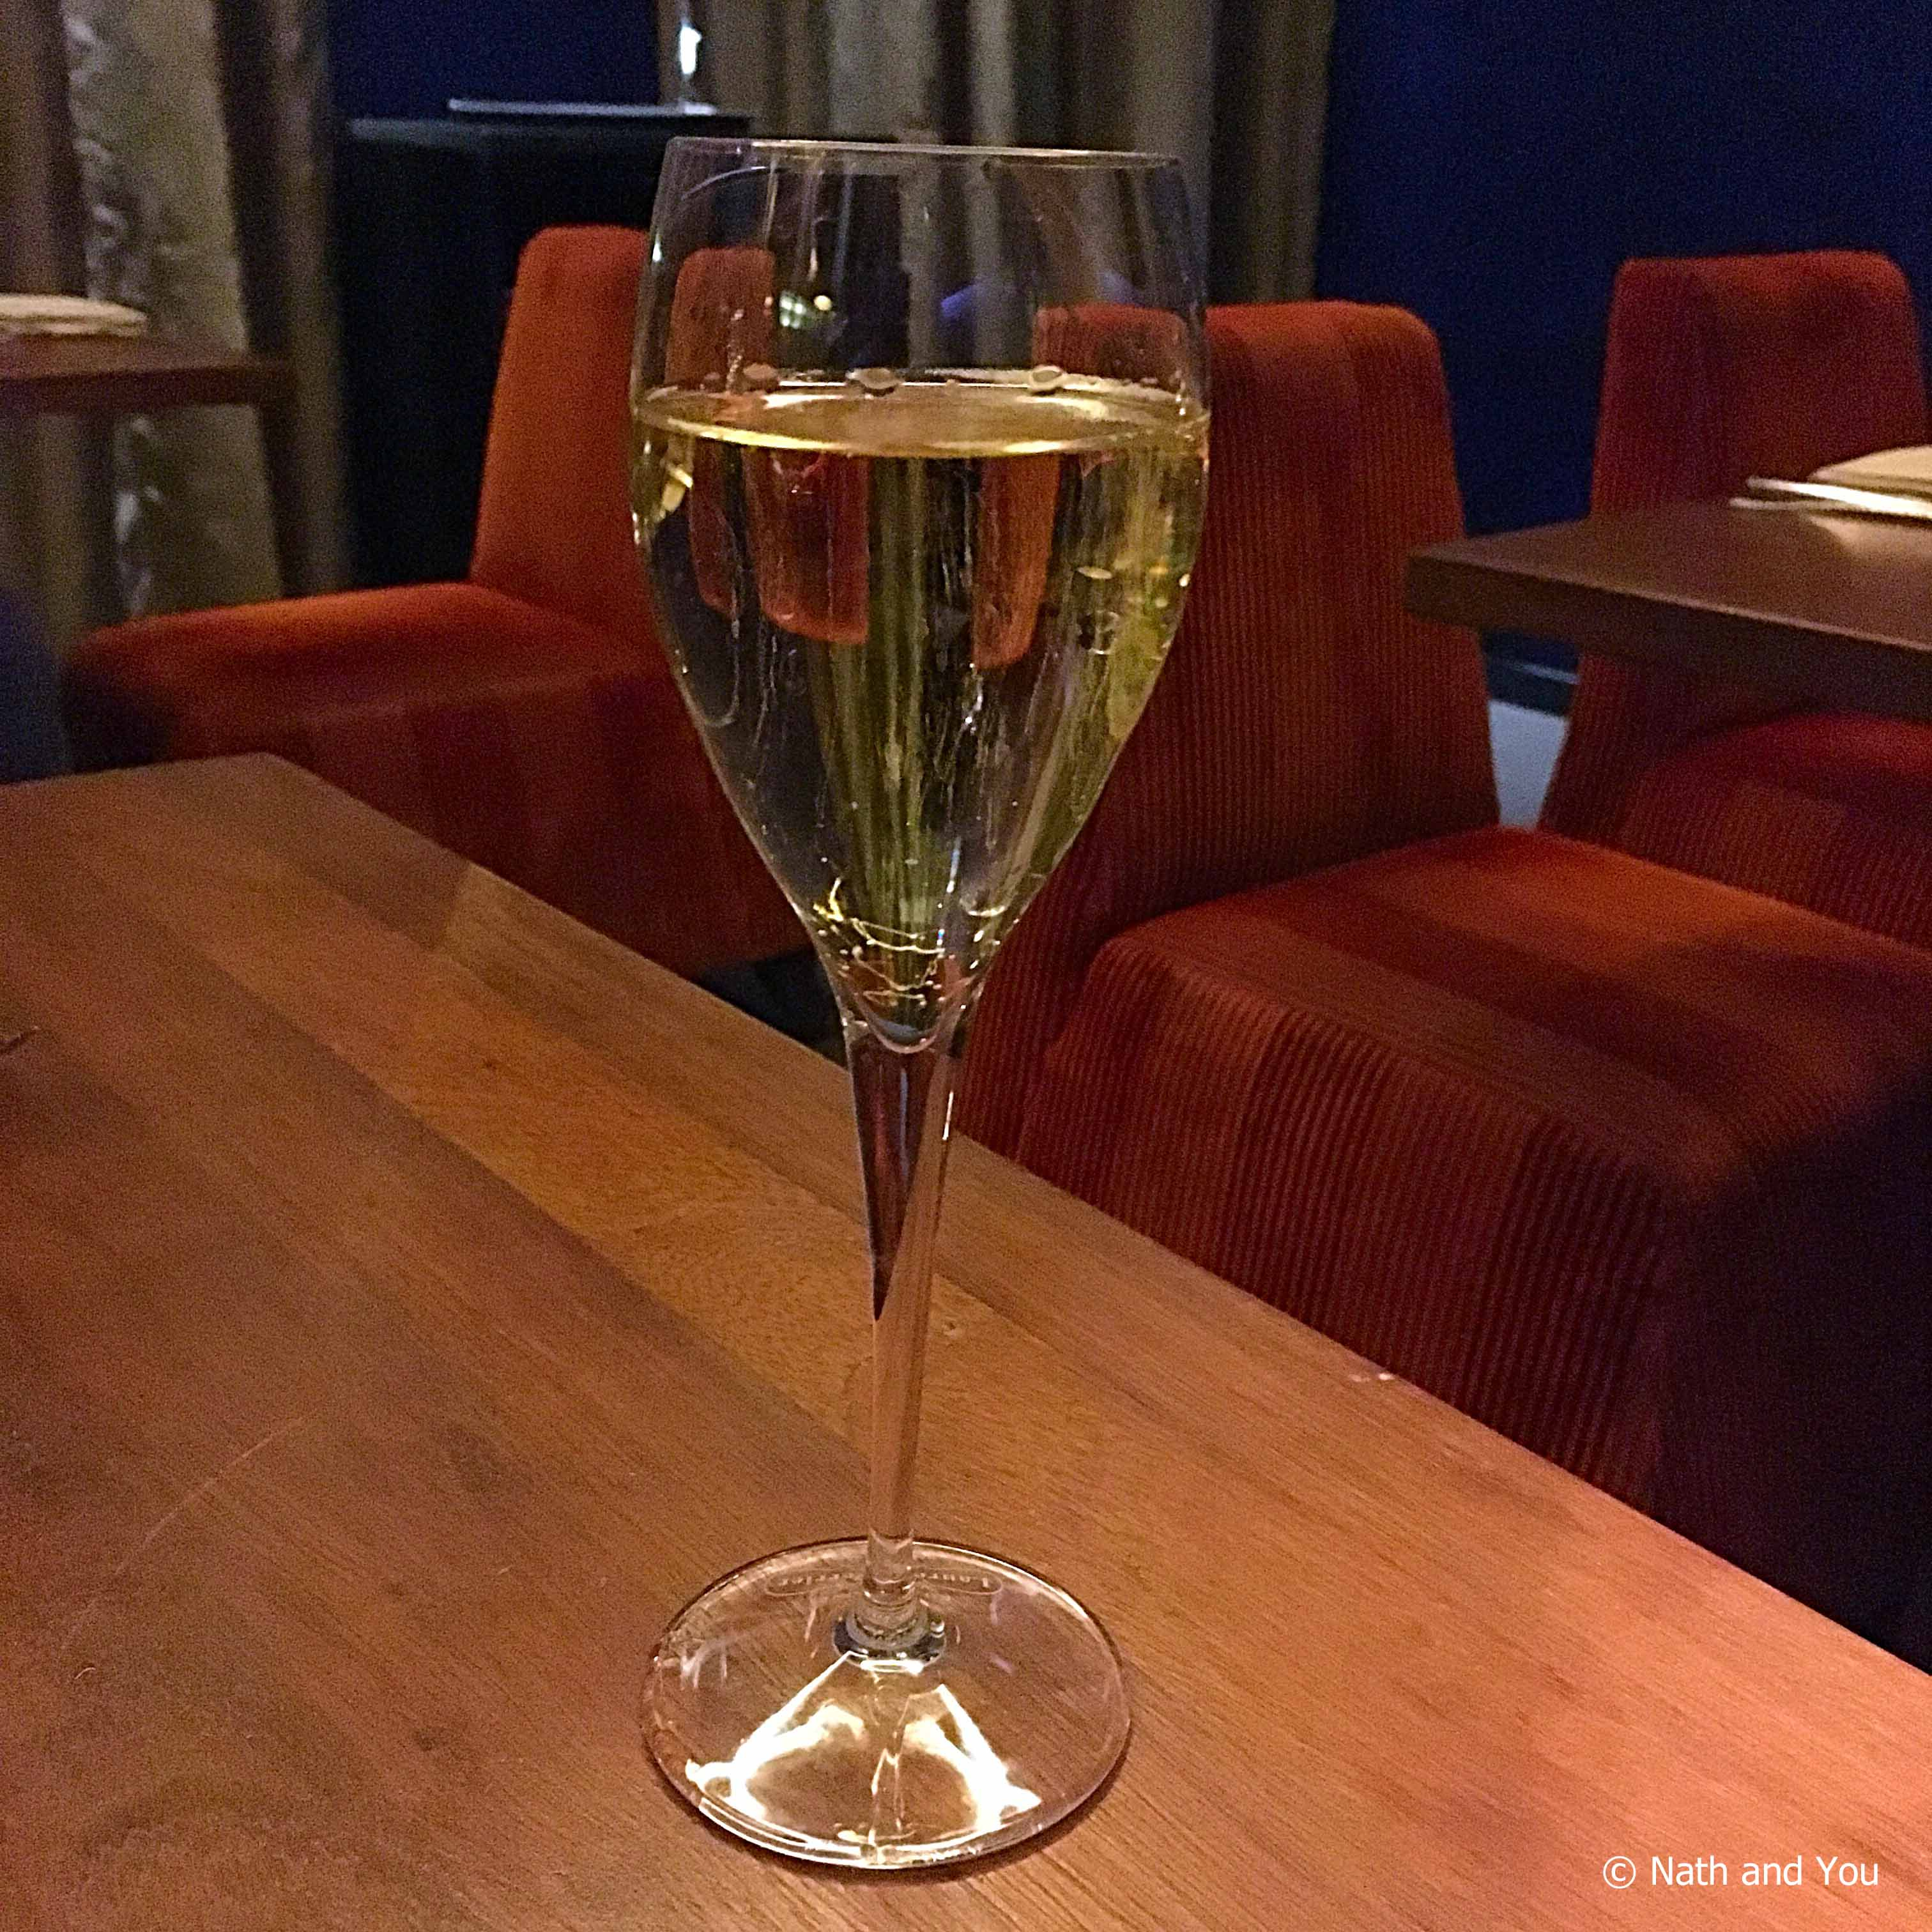 champagne-restaurant-1k-perou-nath-and-you